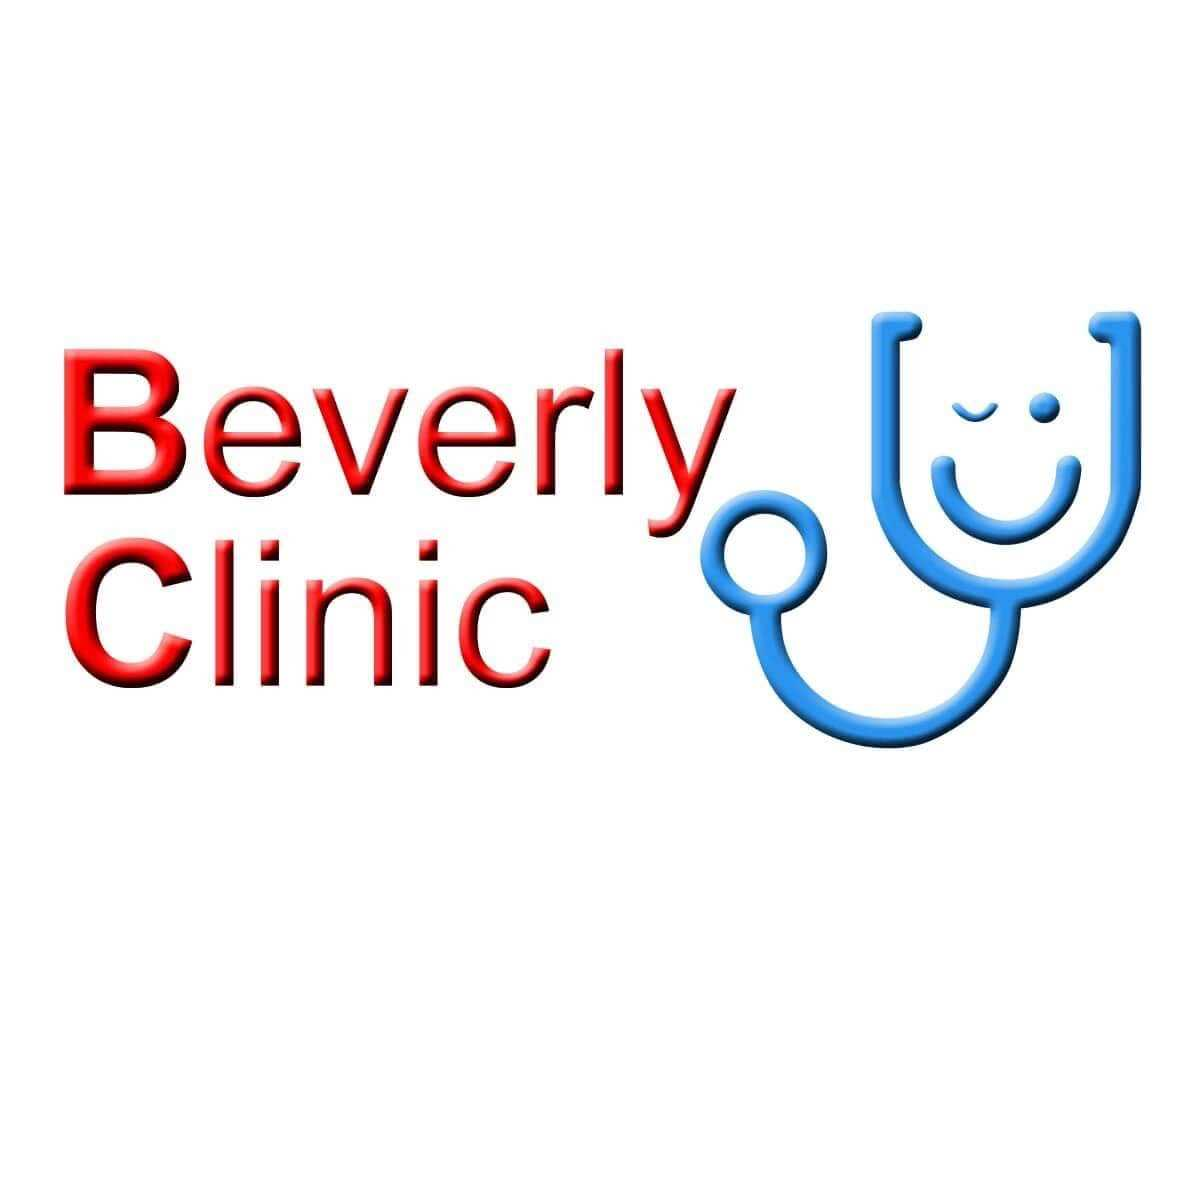 Center Beverly Clinic Doctor Oncologist | Vezeeta com